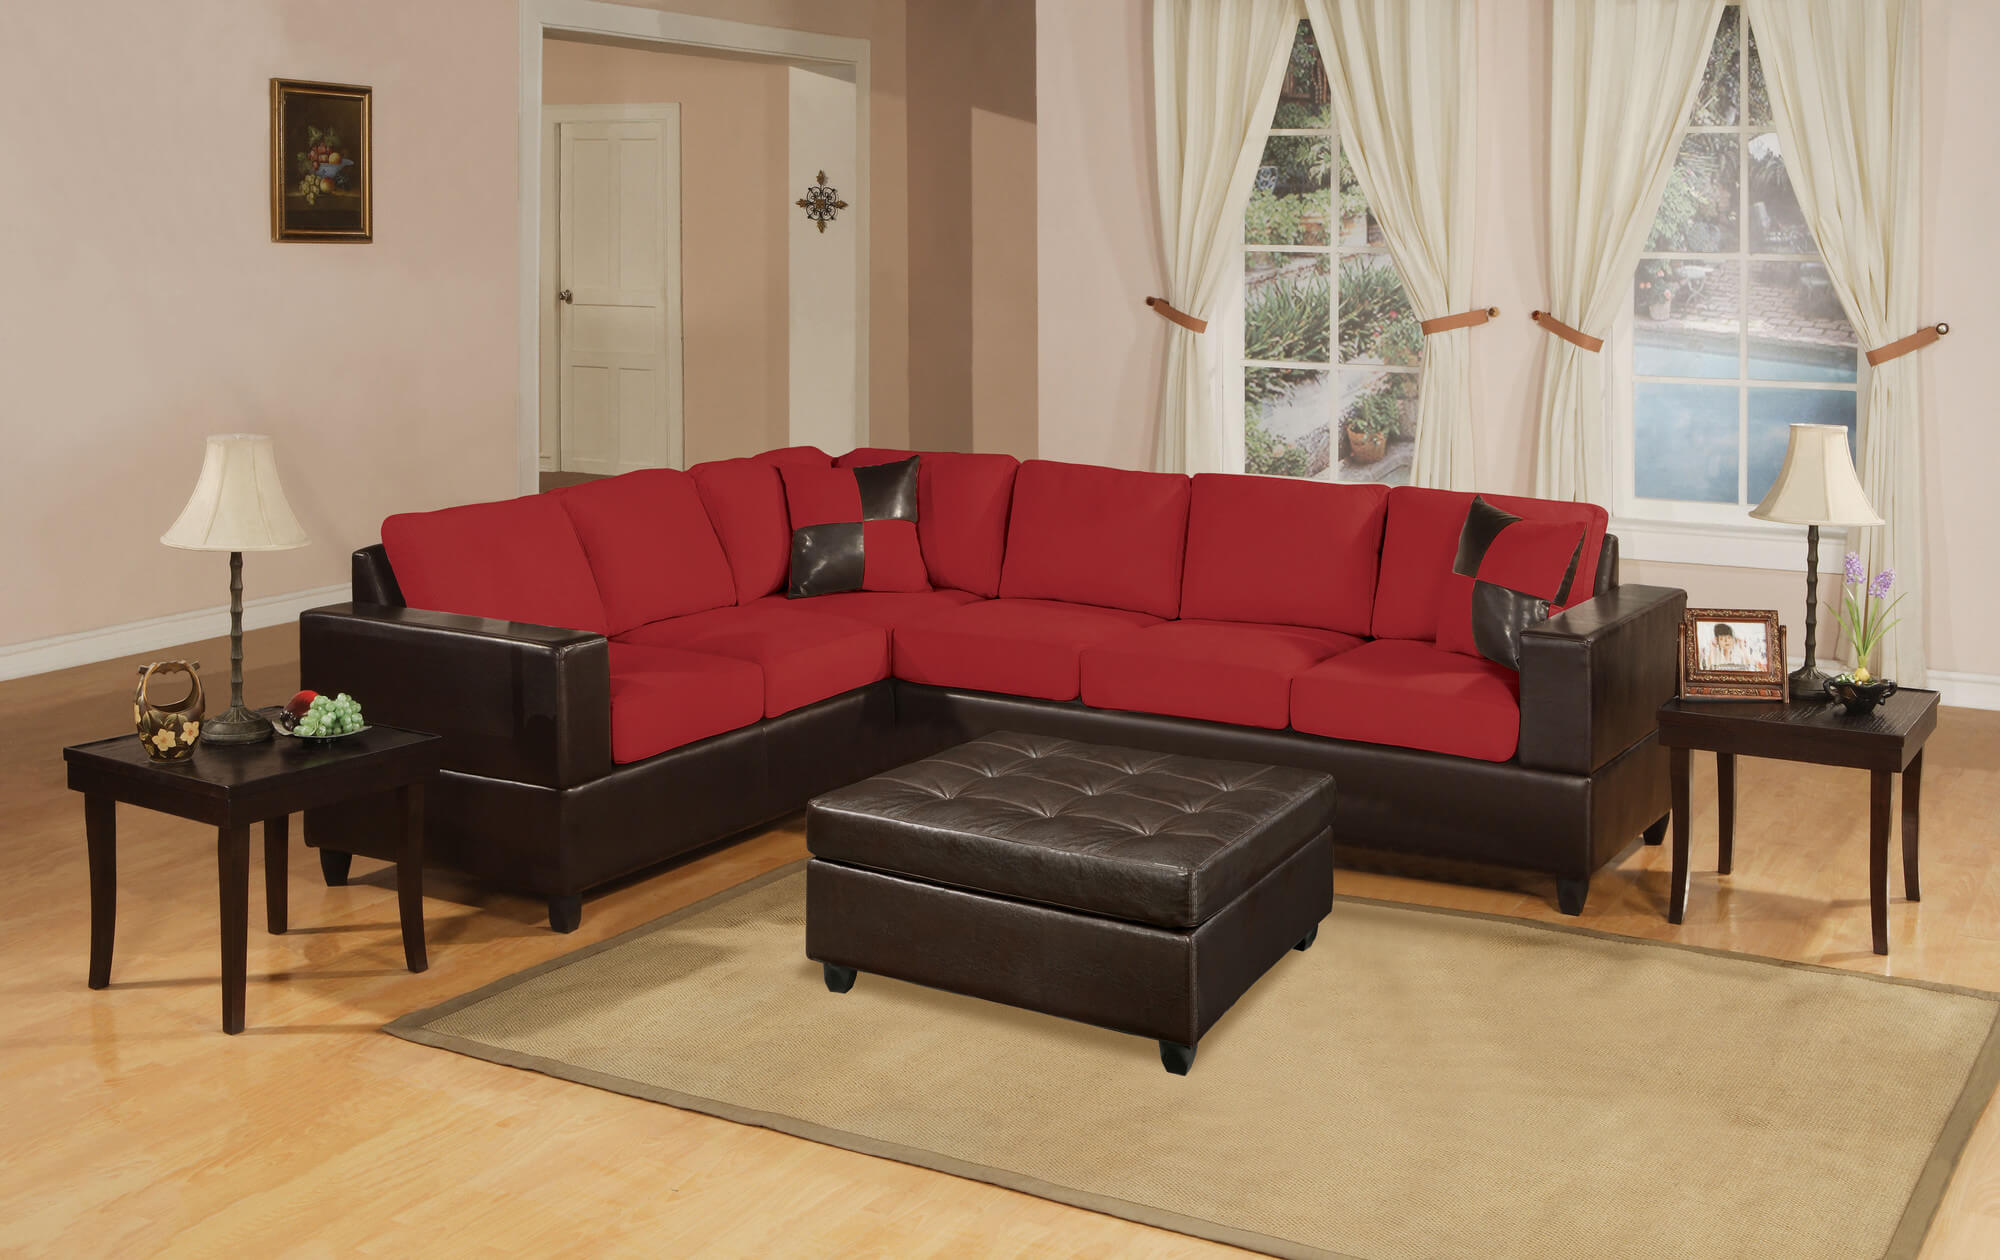 This chocolate brown and red sectional costs less than $1,000. It's a contemporary design with a chocolate brown frame with deep red cushions (seat and back).